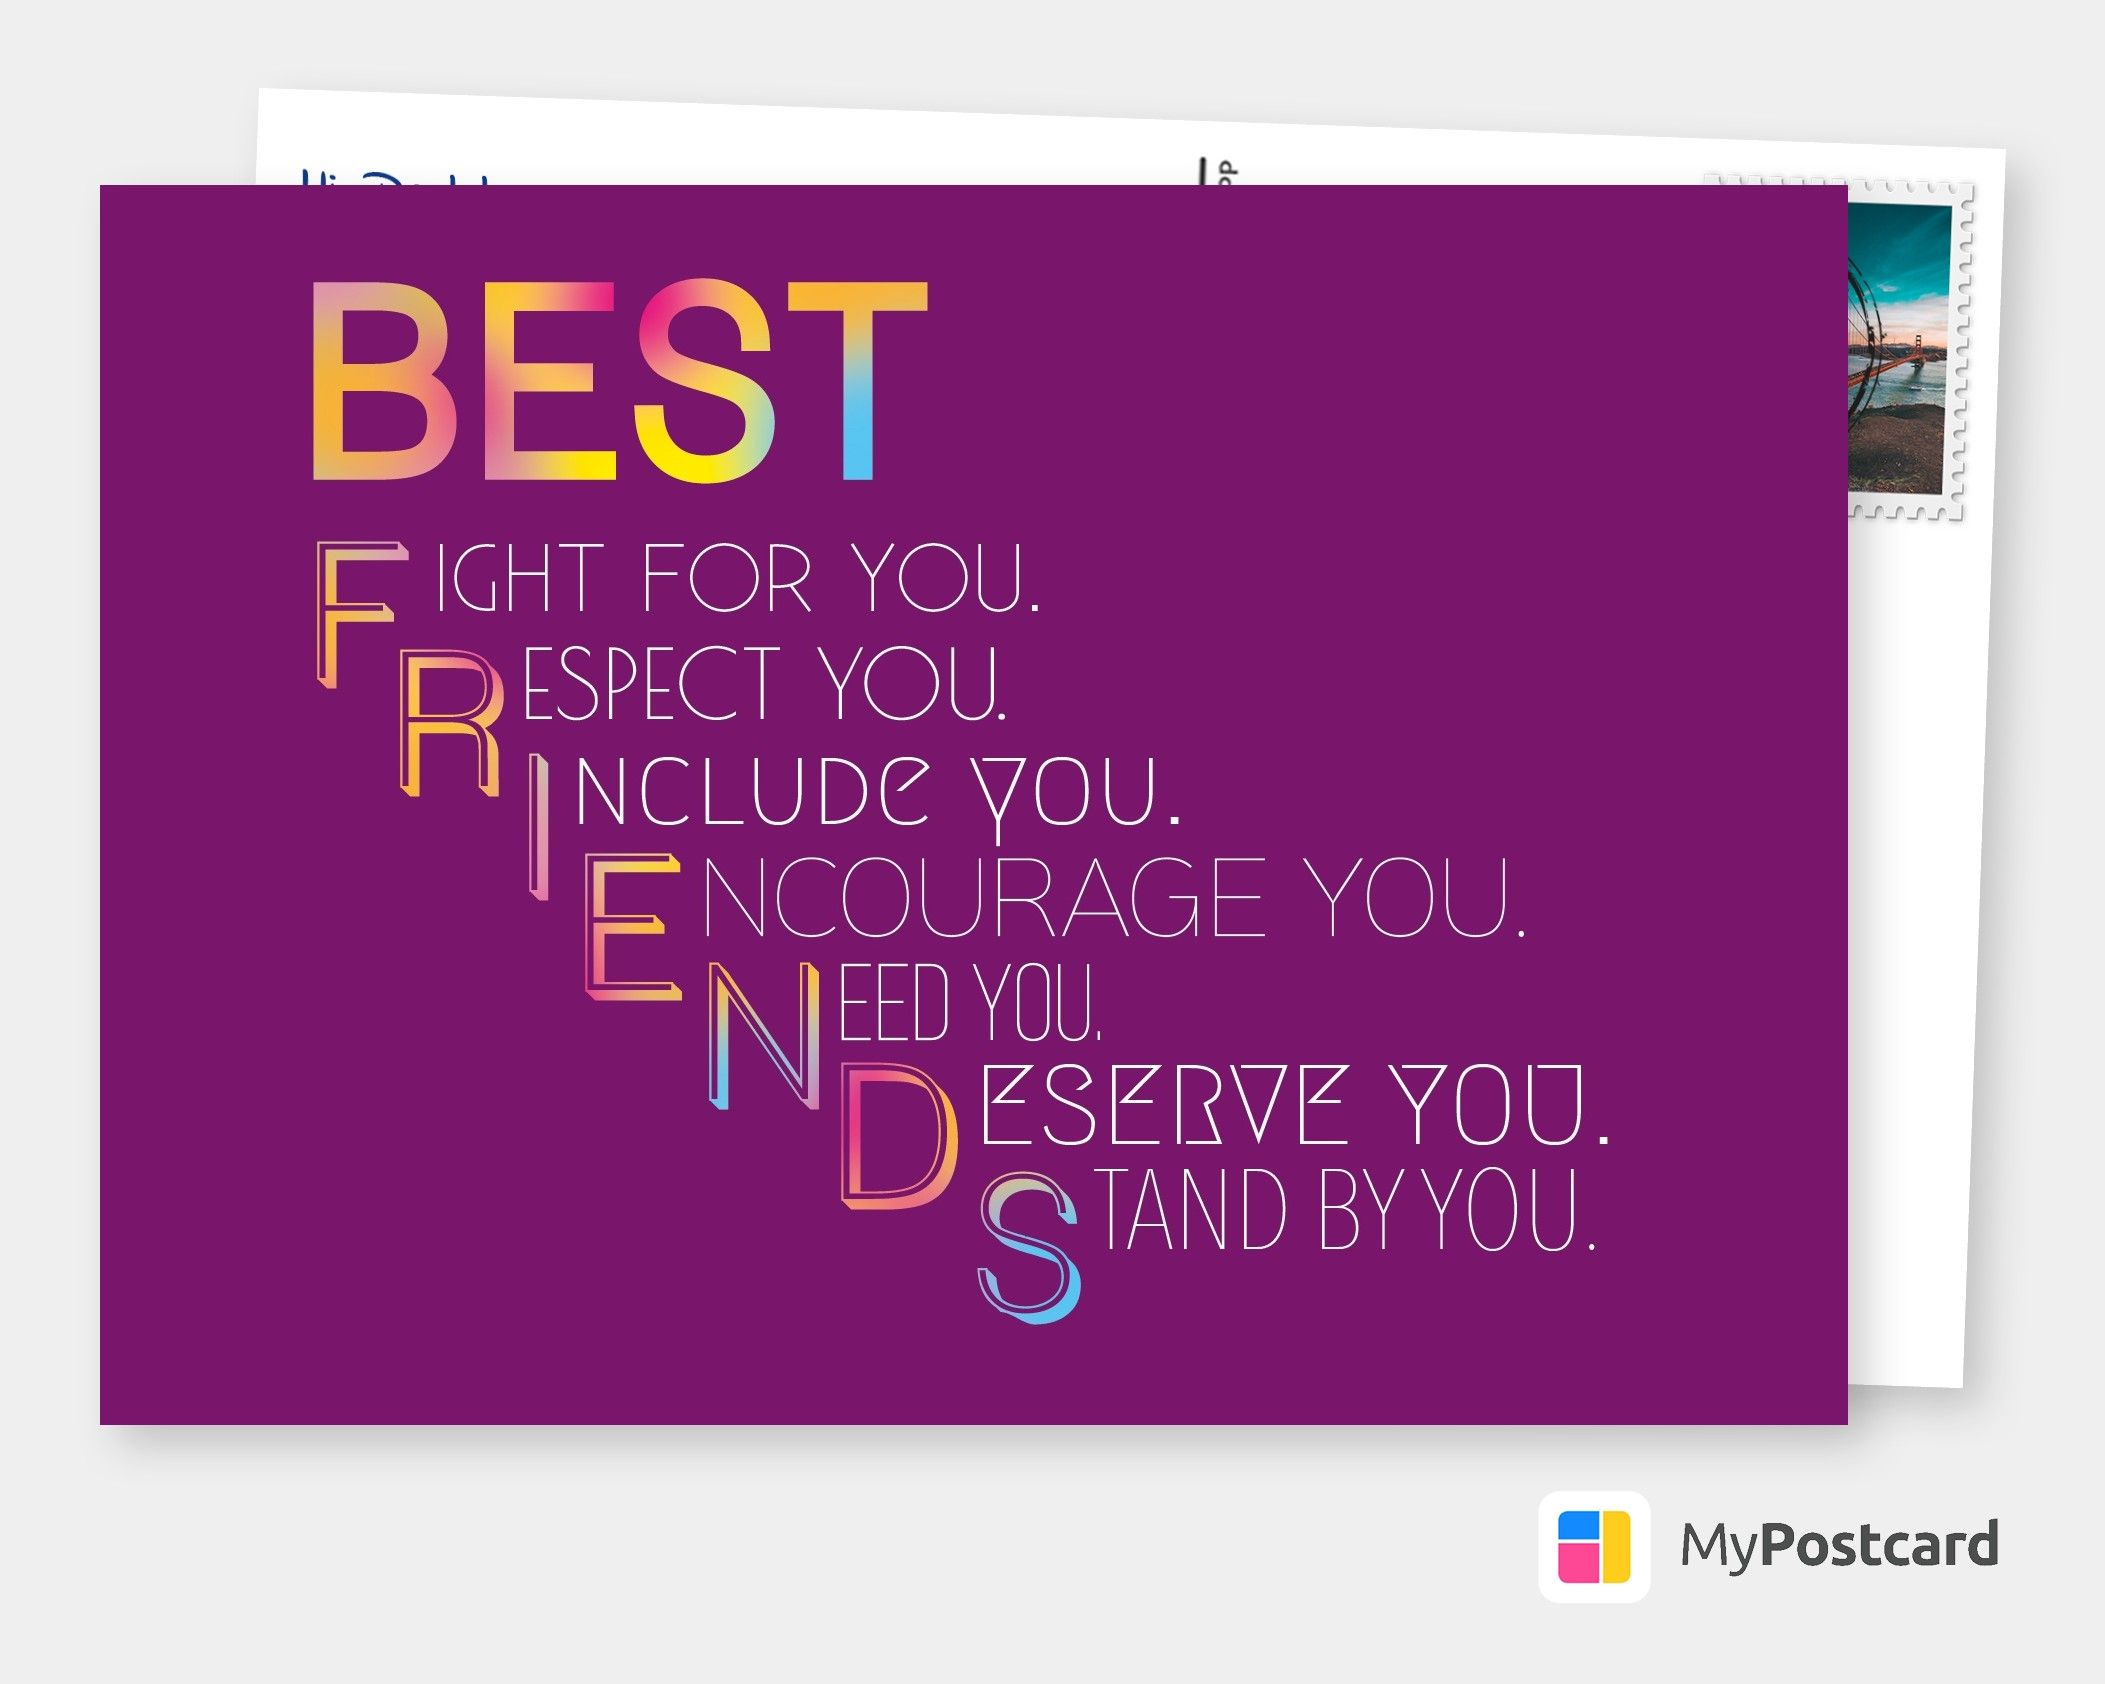 Free Printable Friendship Cards Free Templates Cards Printed And Mailed For You International Shipping Postage Delivery Friendship Cards Friendship Poster Funny Anniversary Cards